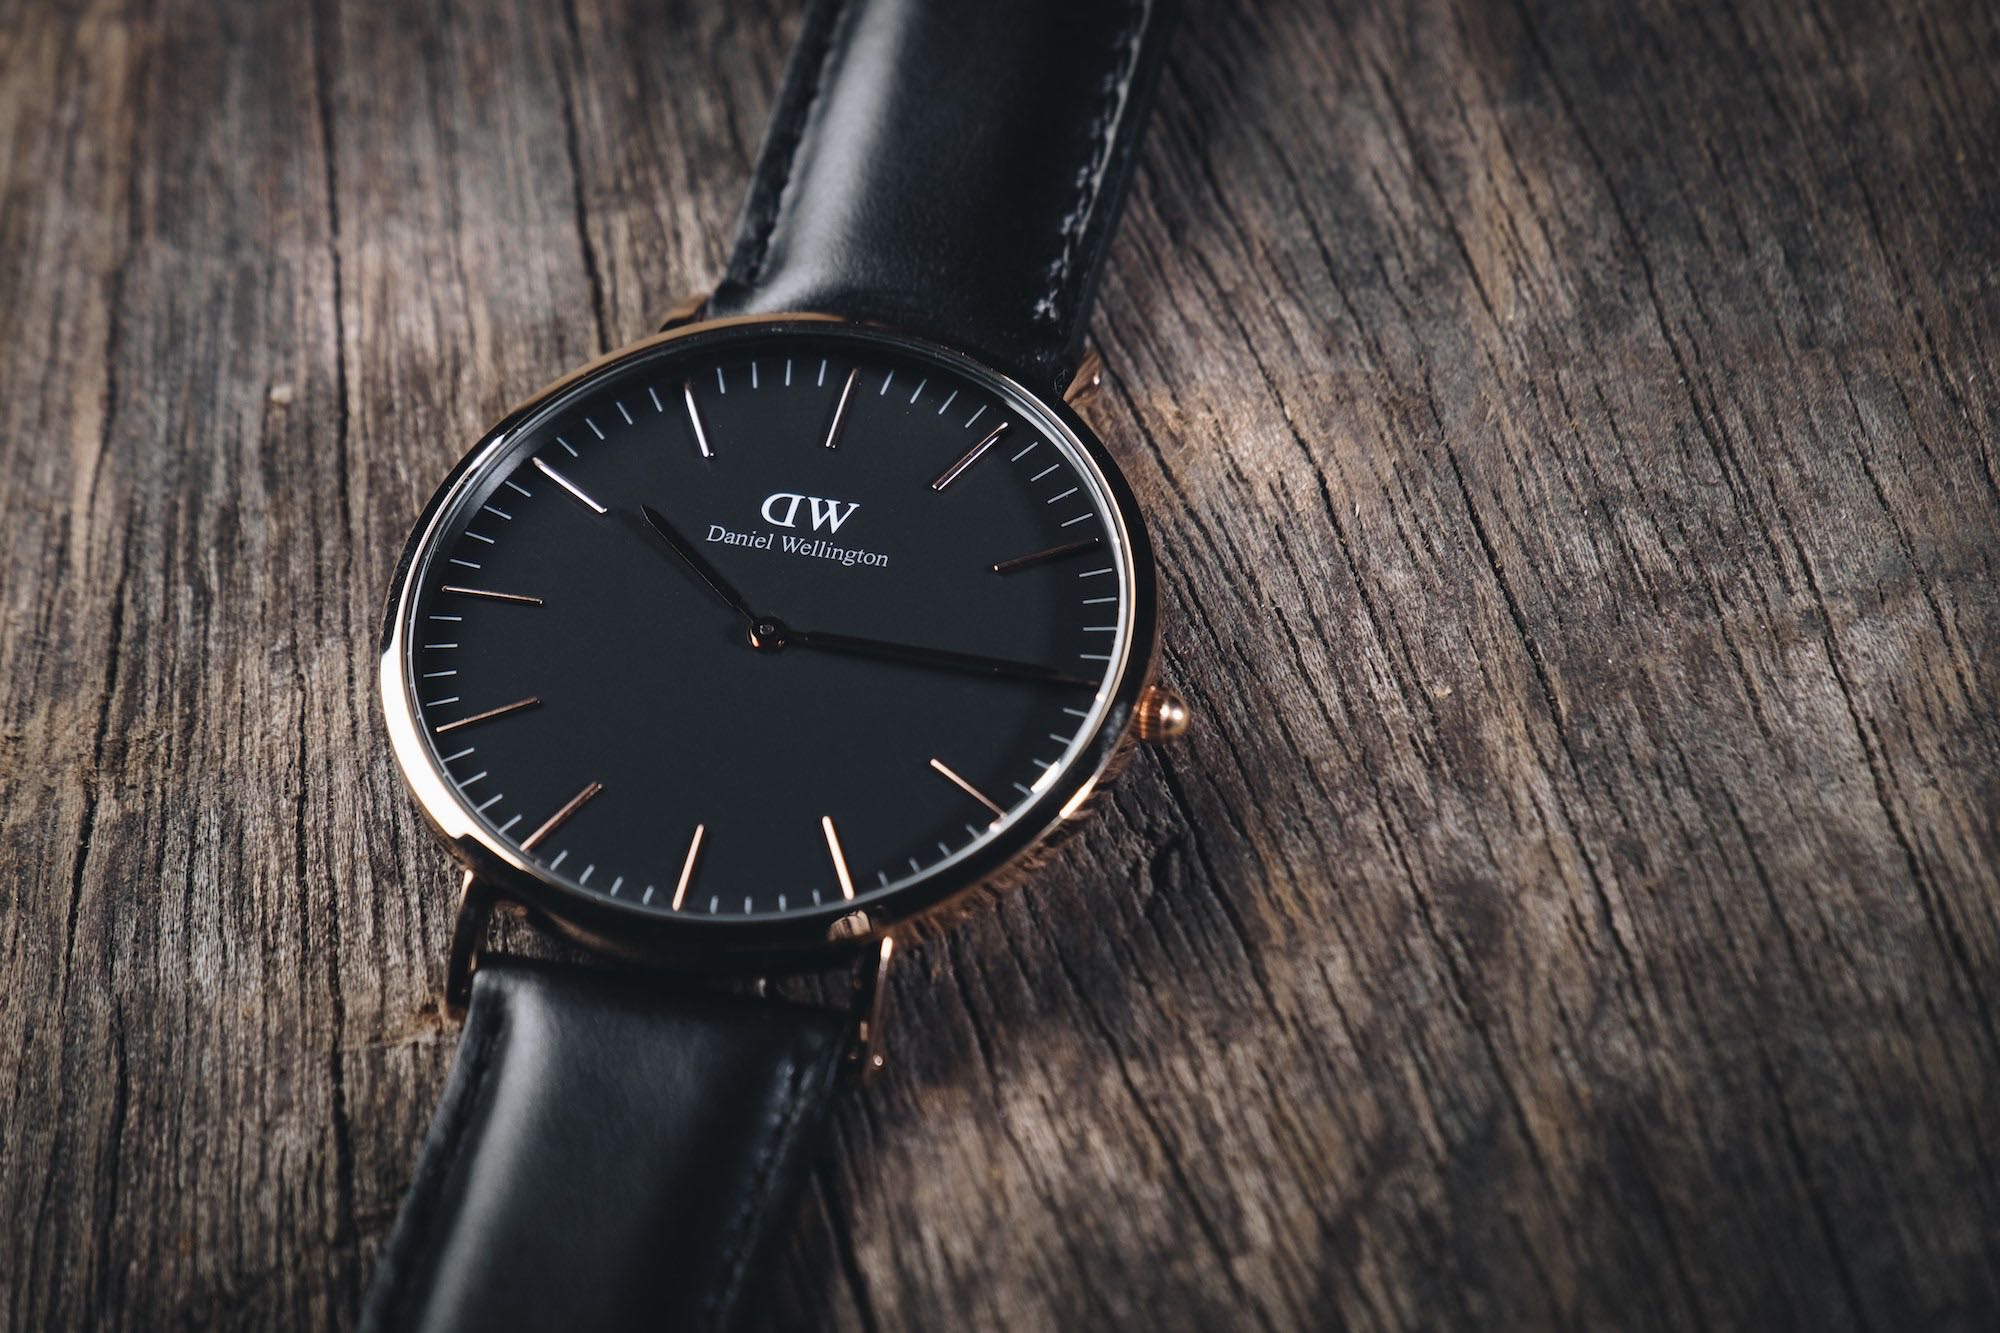 Product photography services studio photographer Singapore e-commerce Asia shoot watch dw Daniel Wellington